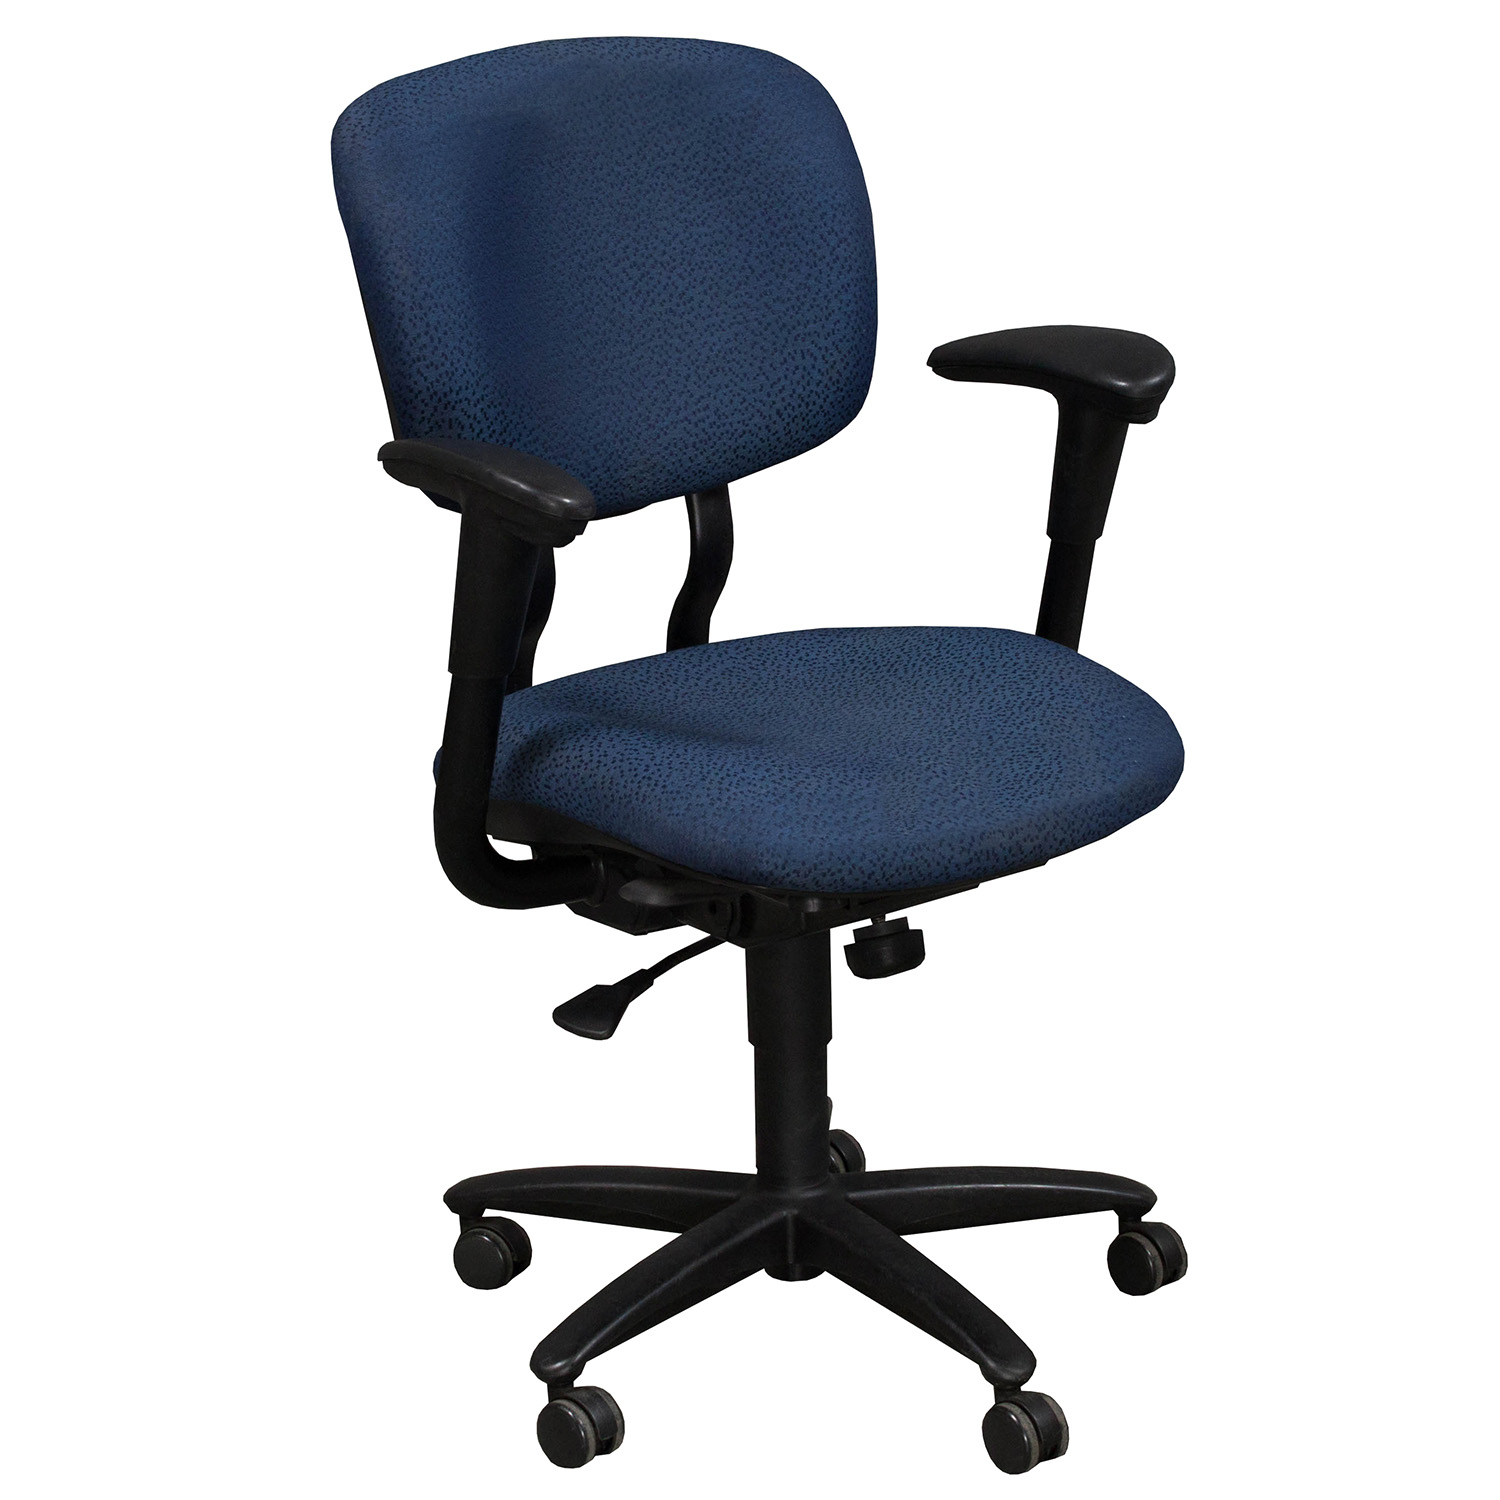 Haworth Improv Desk Used Task Chair Blue National